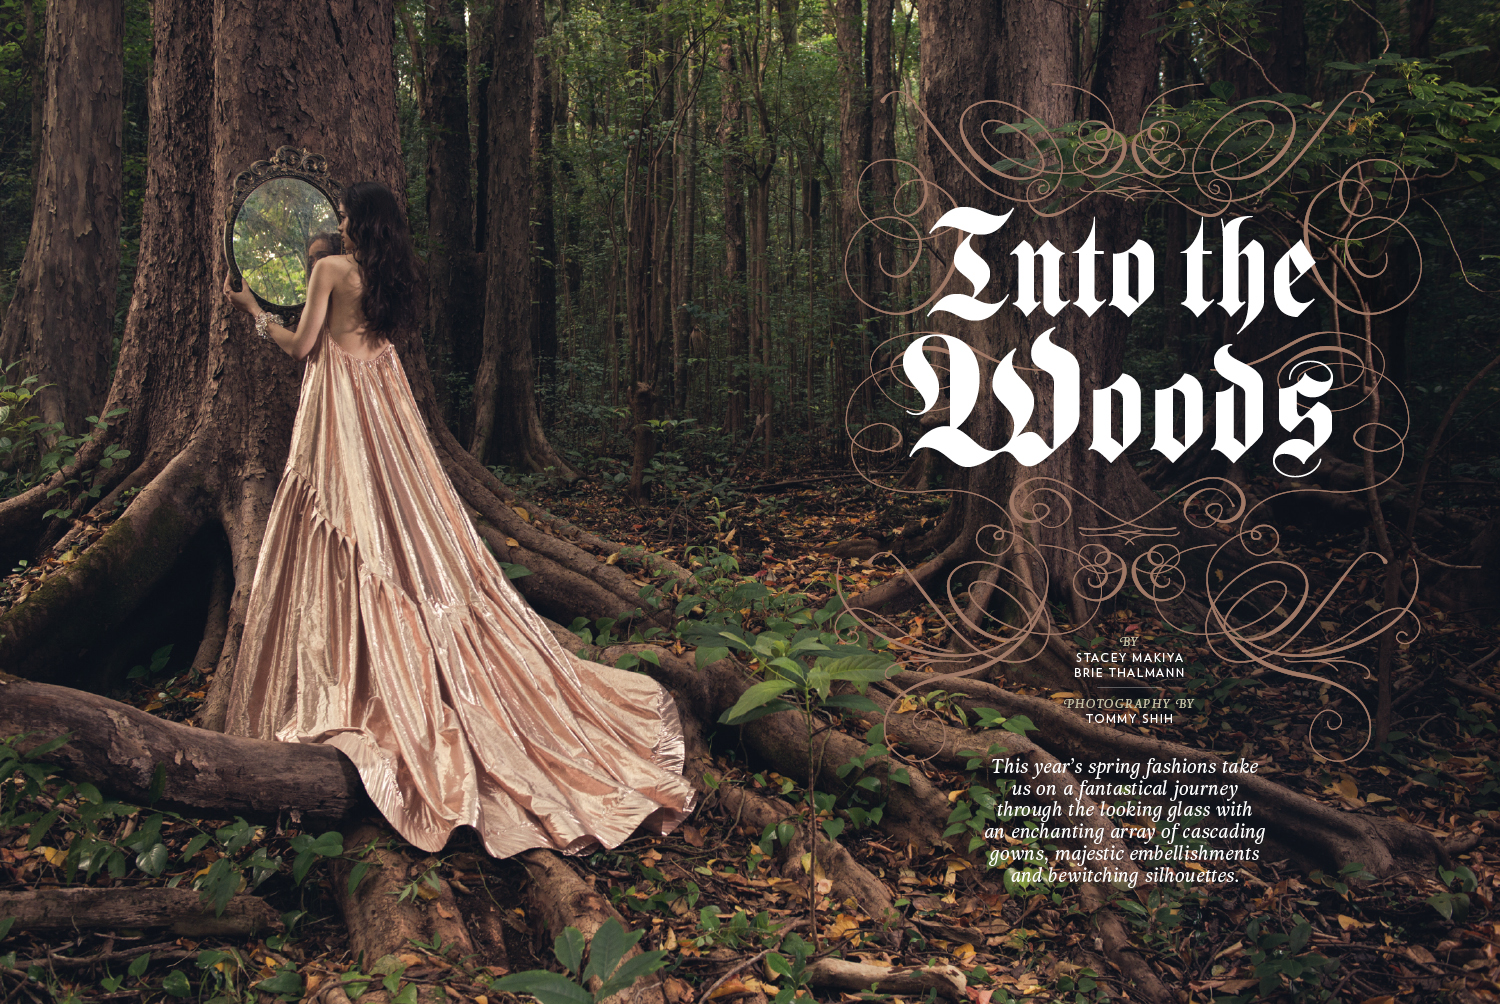 03-16 HM Into the Woods_1.jpg